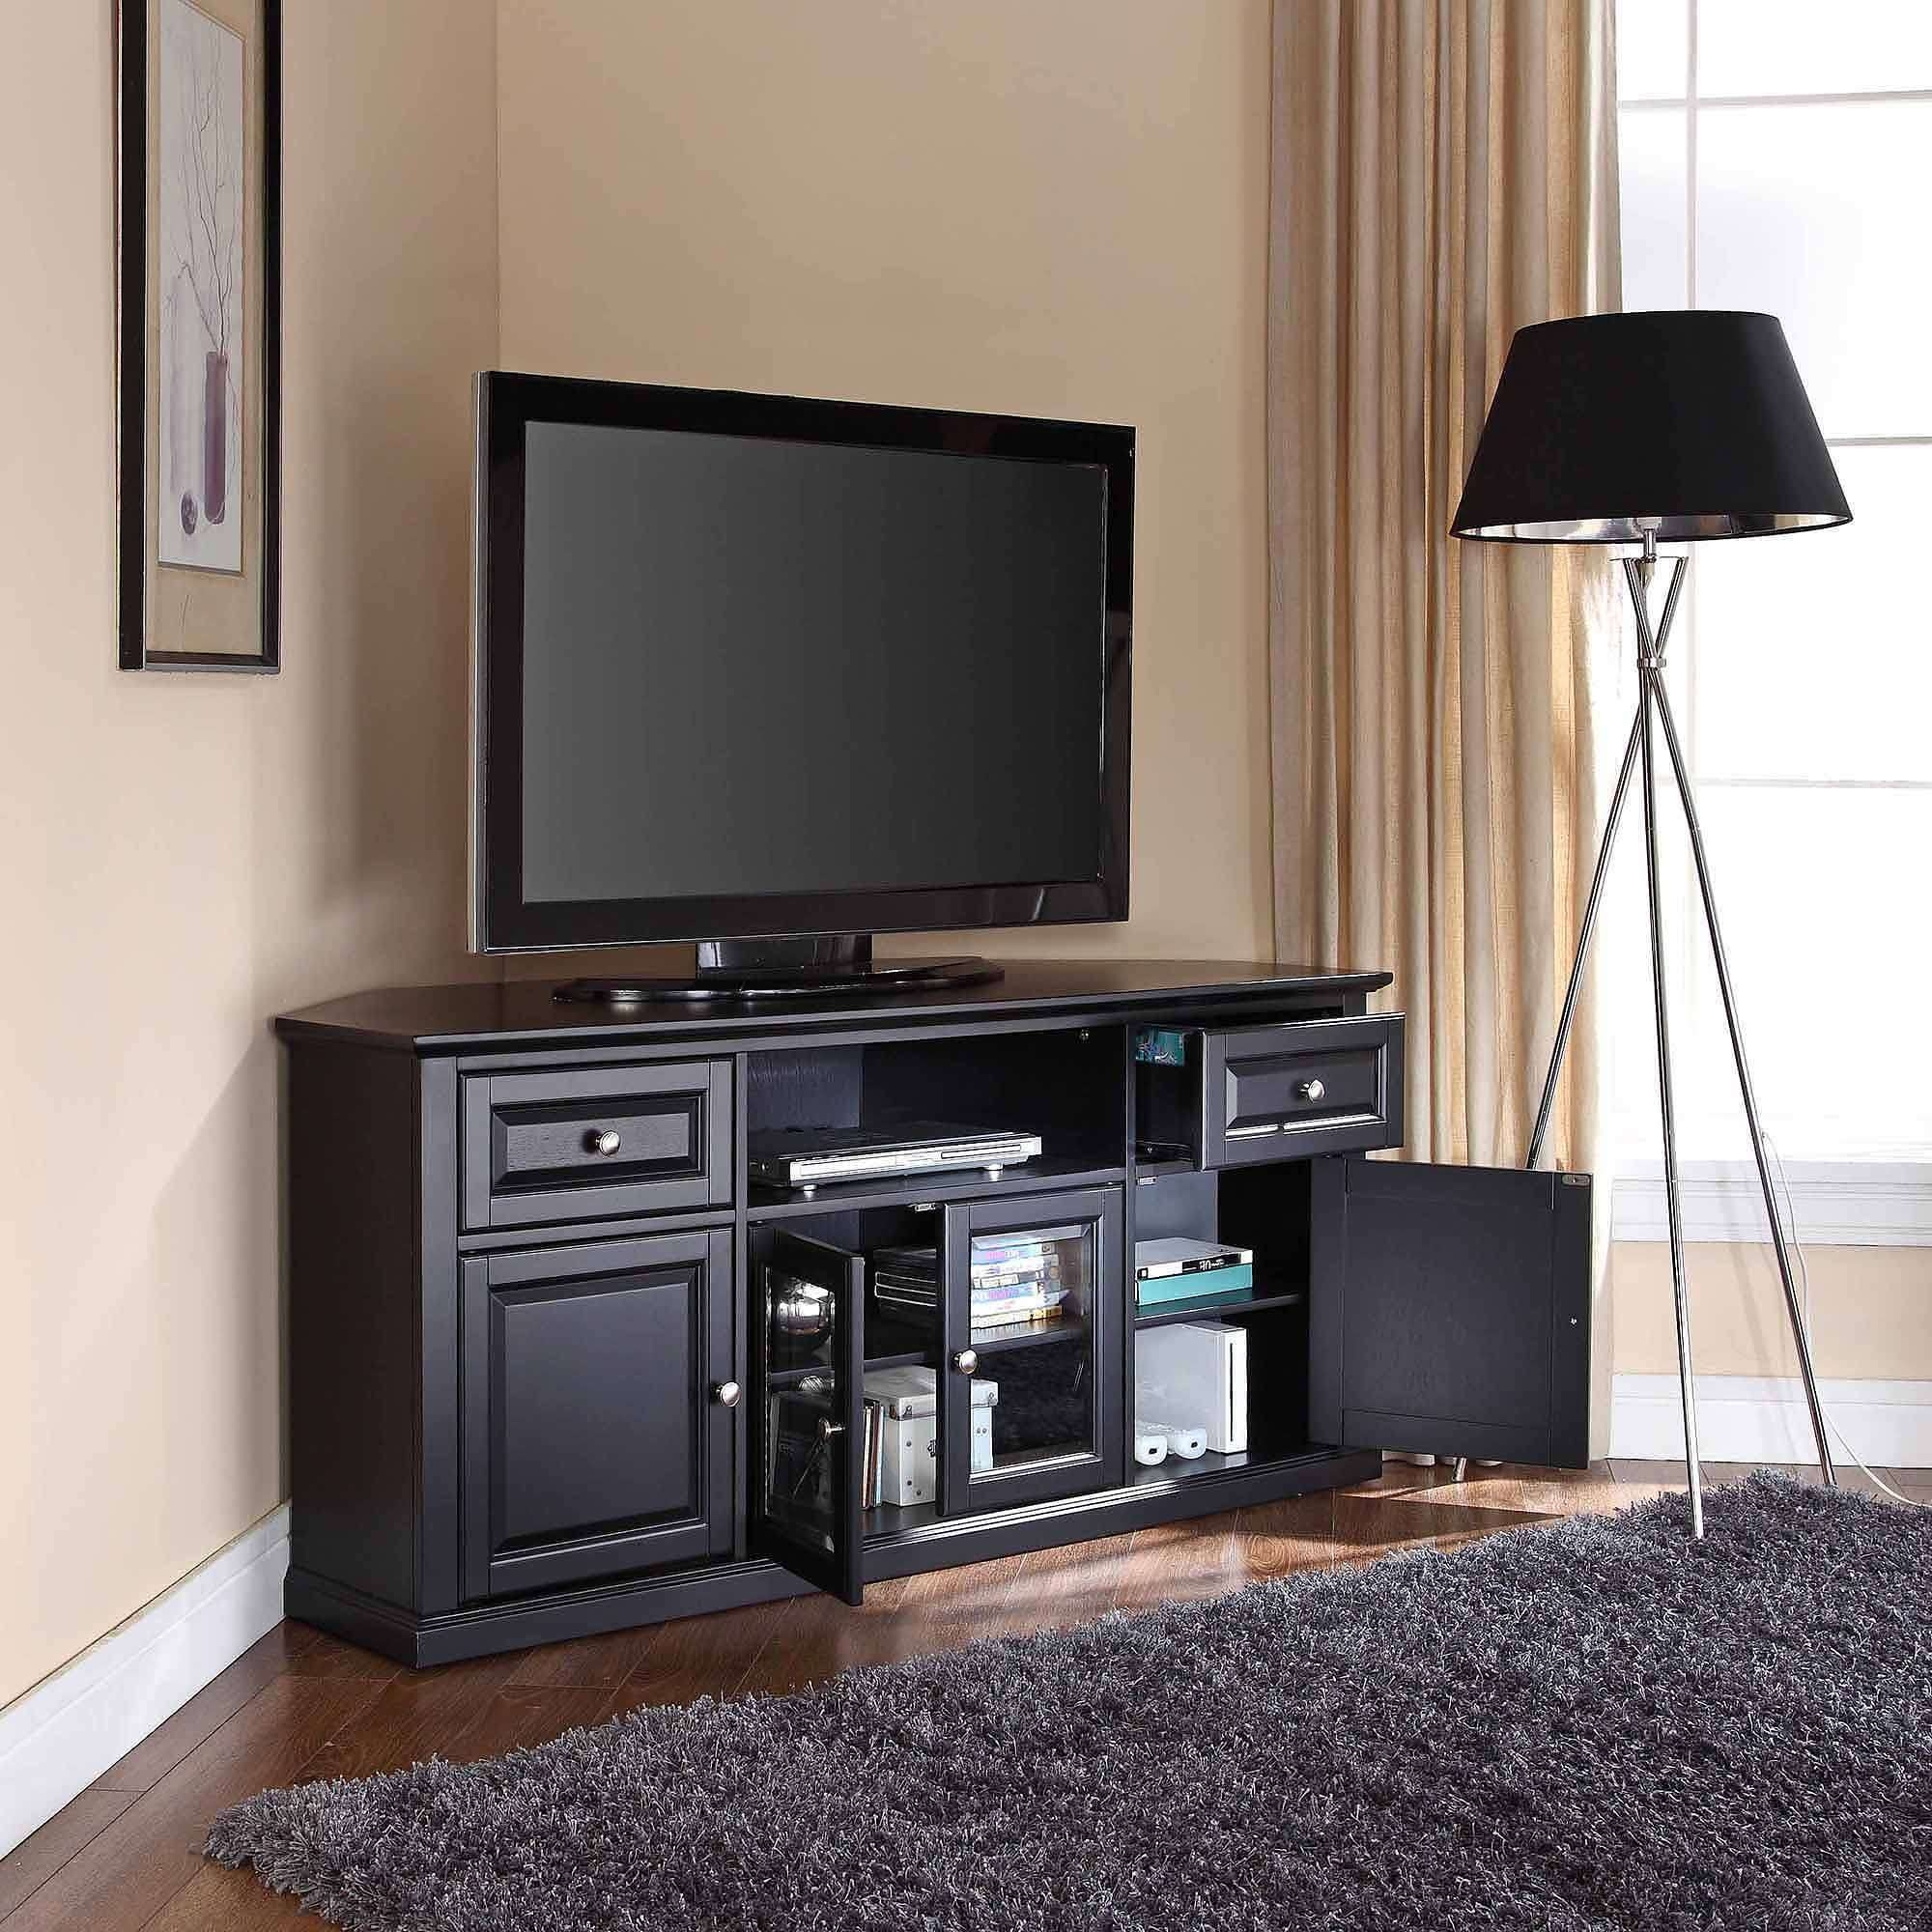 Tv Stand : 32 Unusual 55 Inch Corner Tv Stand With Mount Images Intended For Corner Tv Stands For 55 Inch Tv (View 5 of 15)